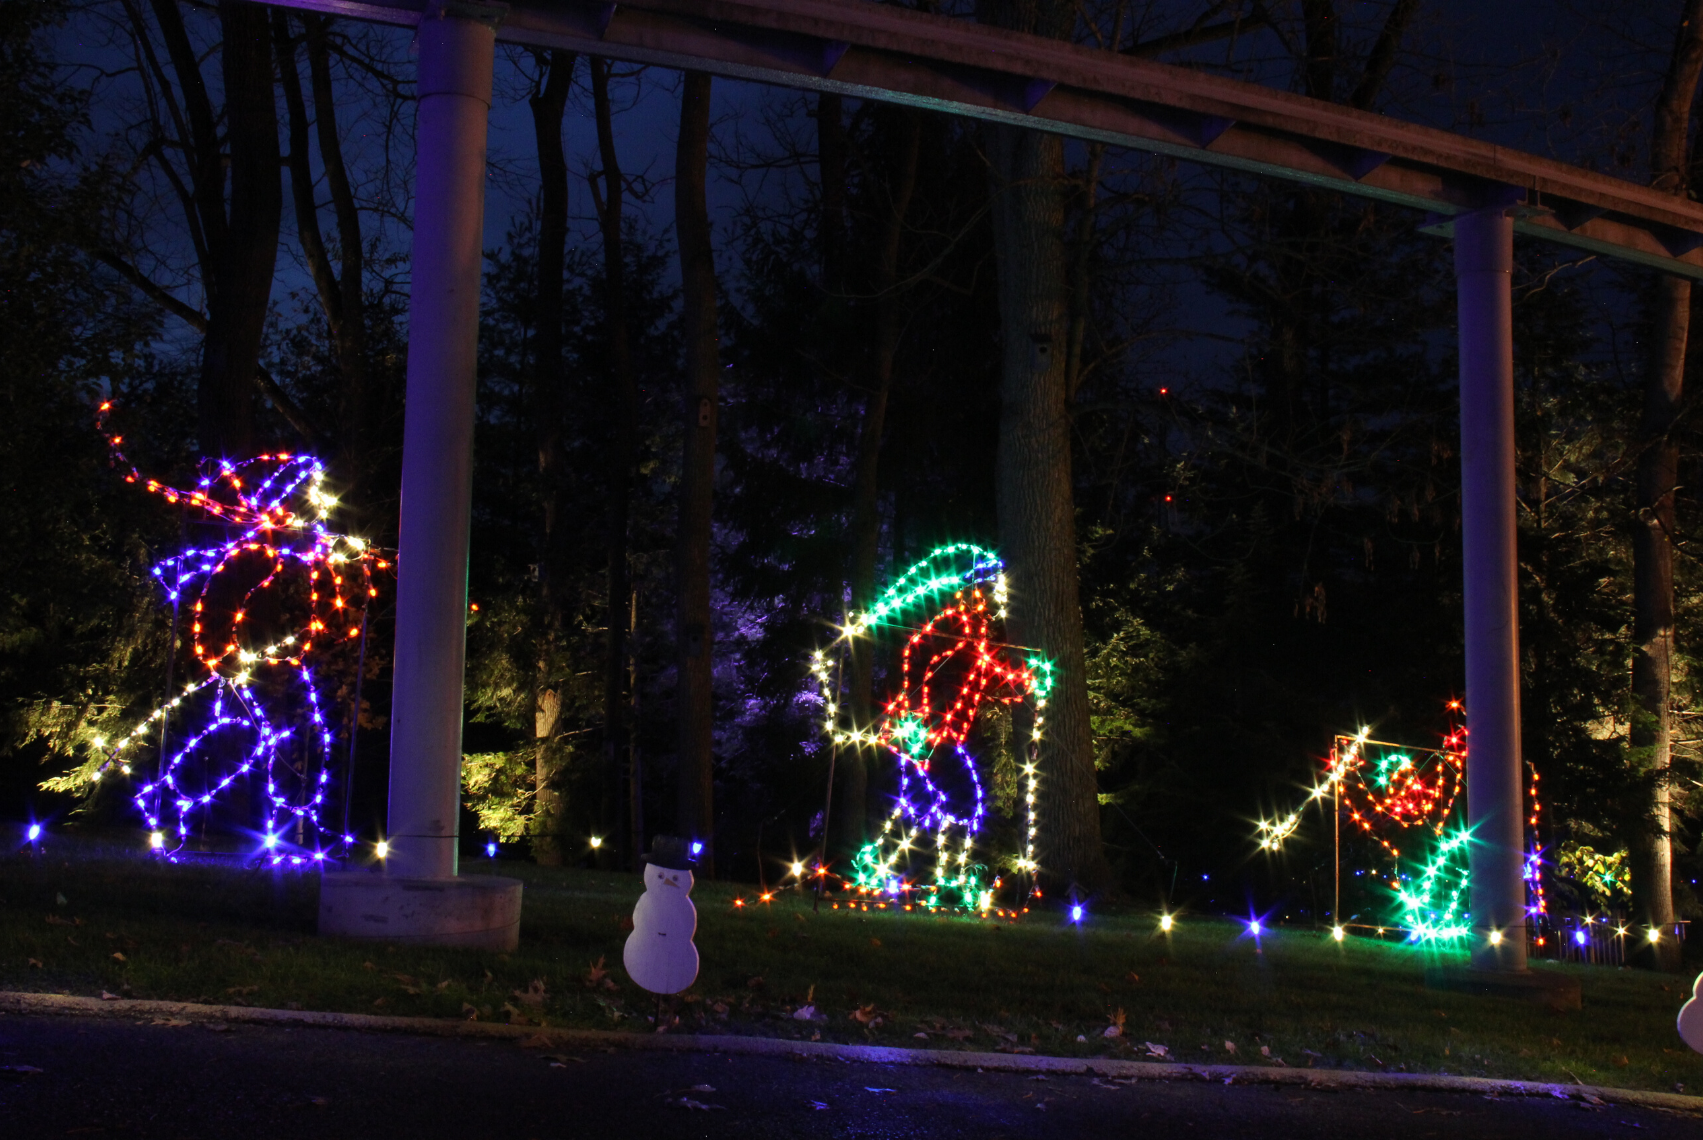 People skiing decorations made of holiday lights